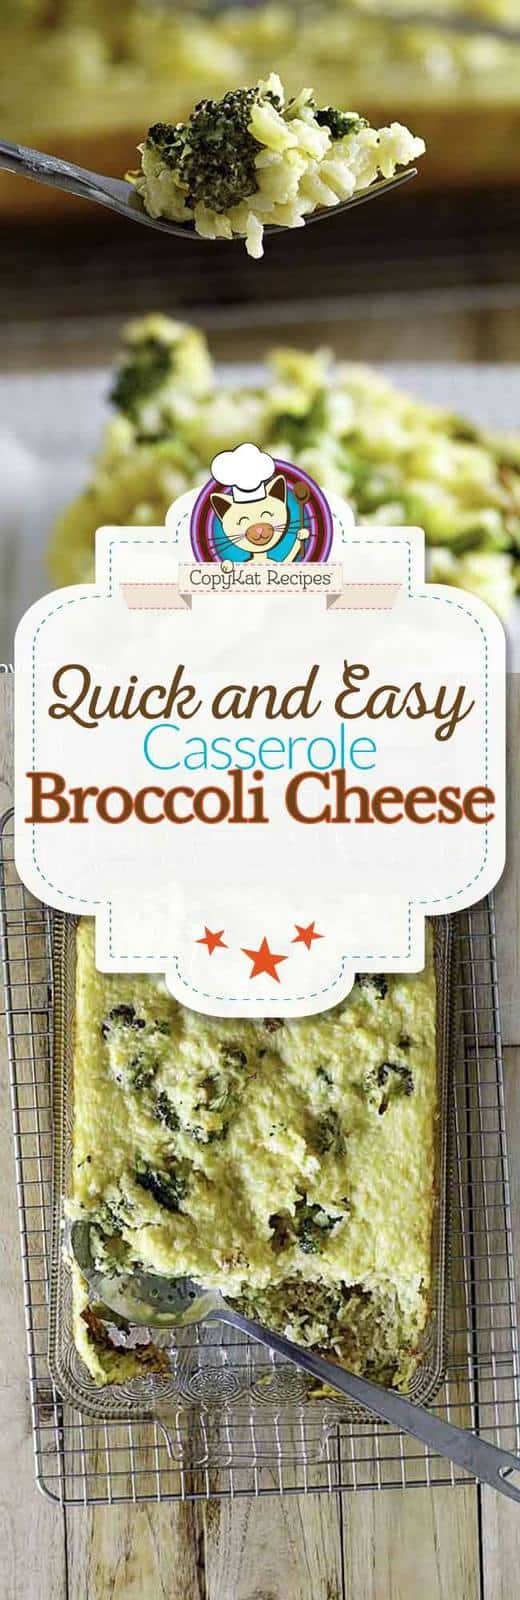 You can make this delicious quick and easy broccoli cheddar casserole. #rice #casserole #sidedish #velveeta